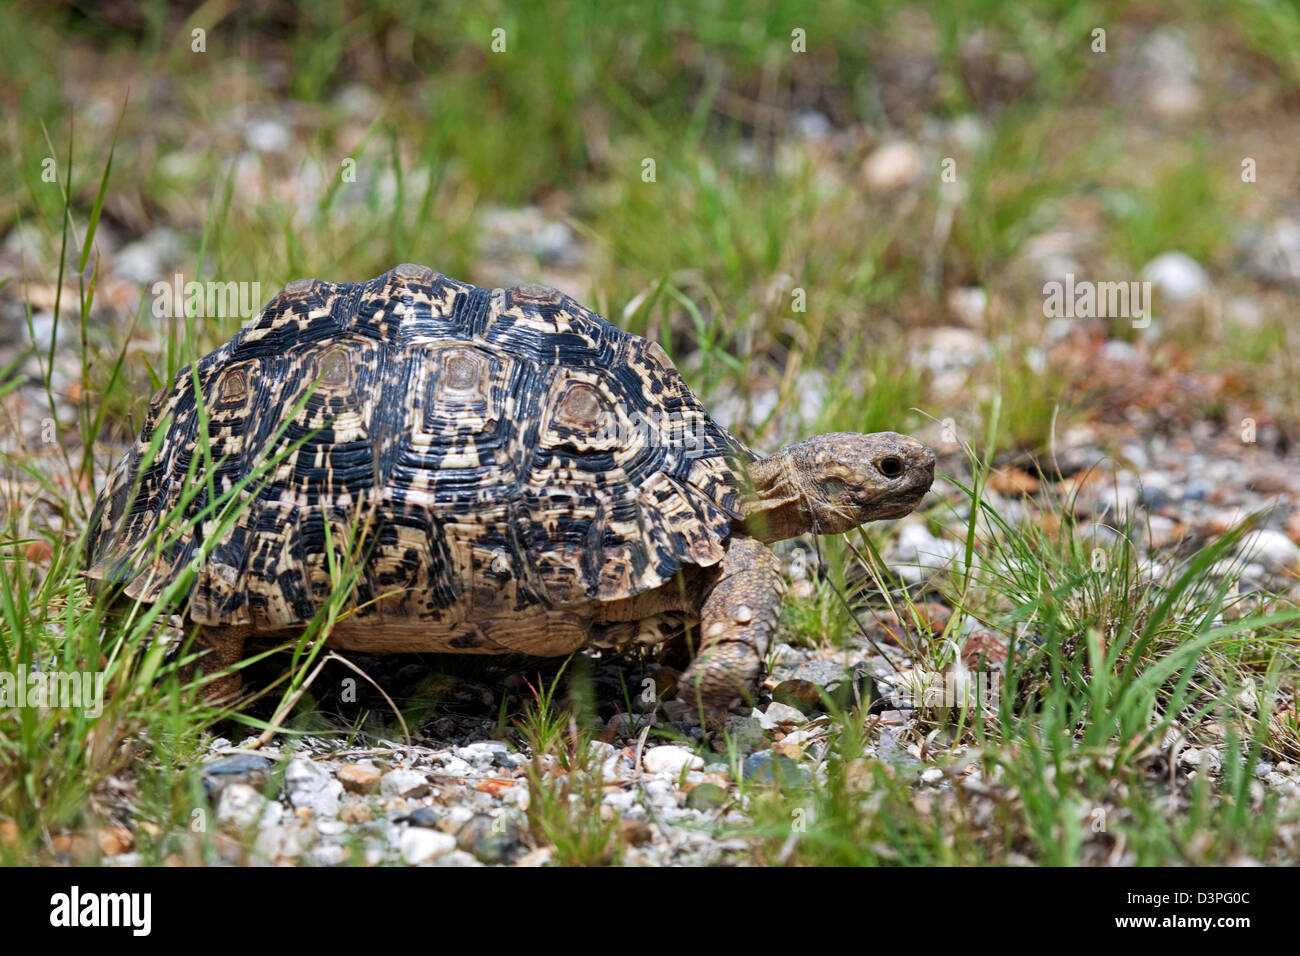 Leopard tortoise (Stigmochelys pardalis) in the Etosha National Park, Namibia, South Africa - Stock Image